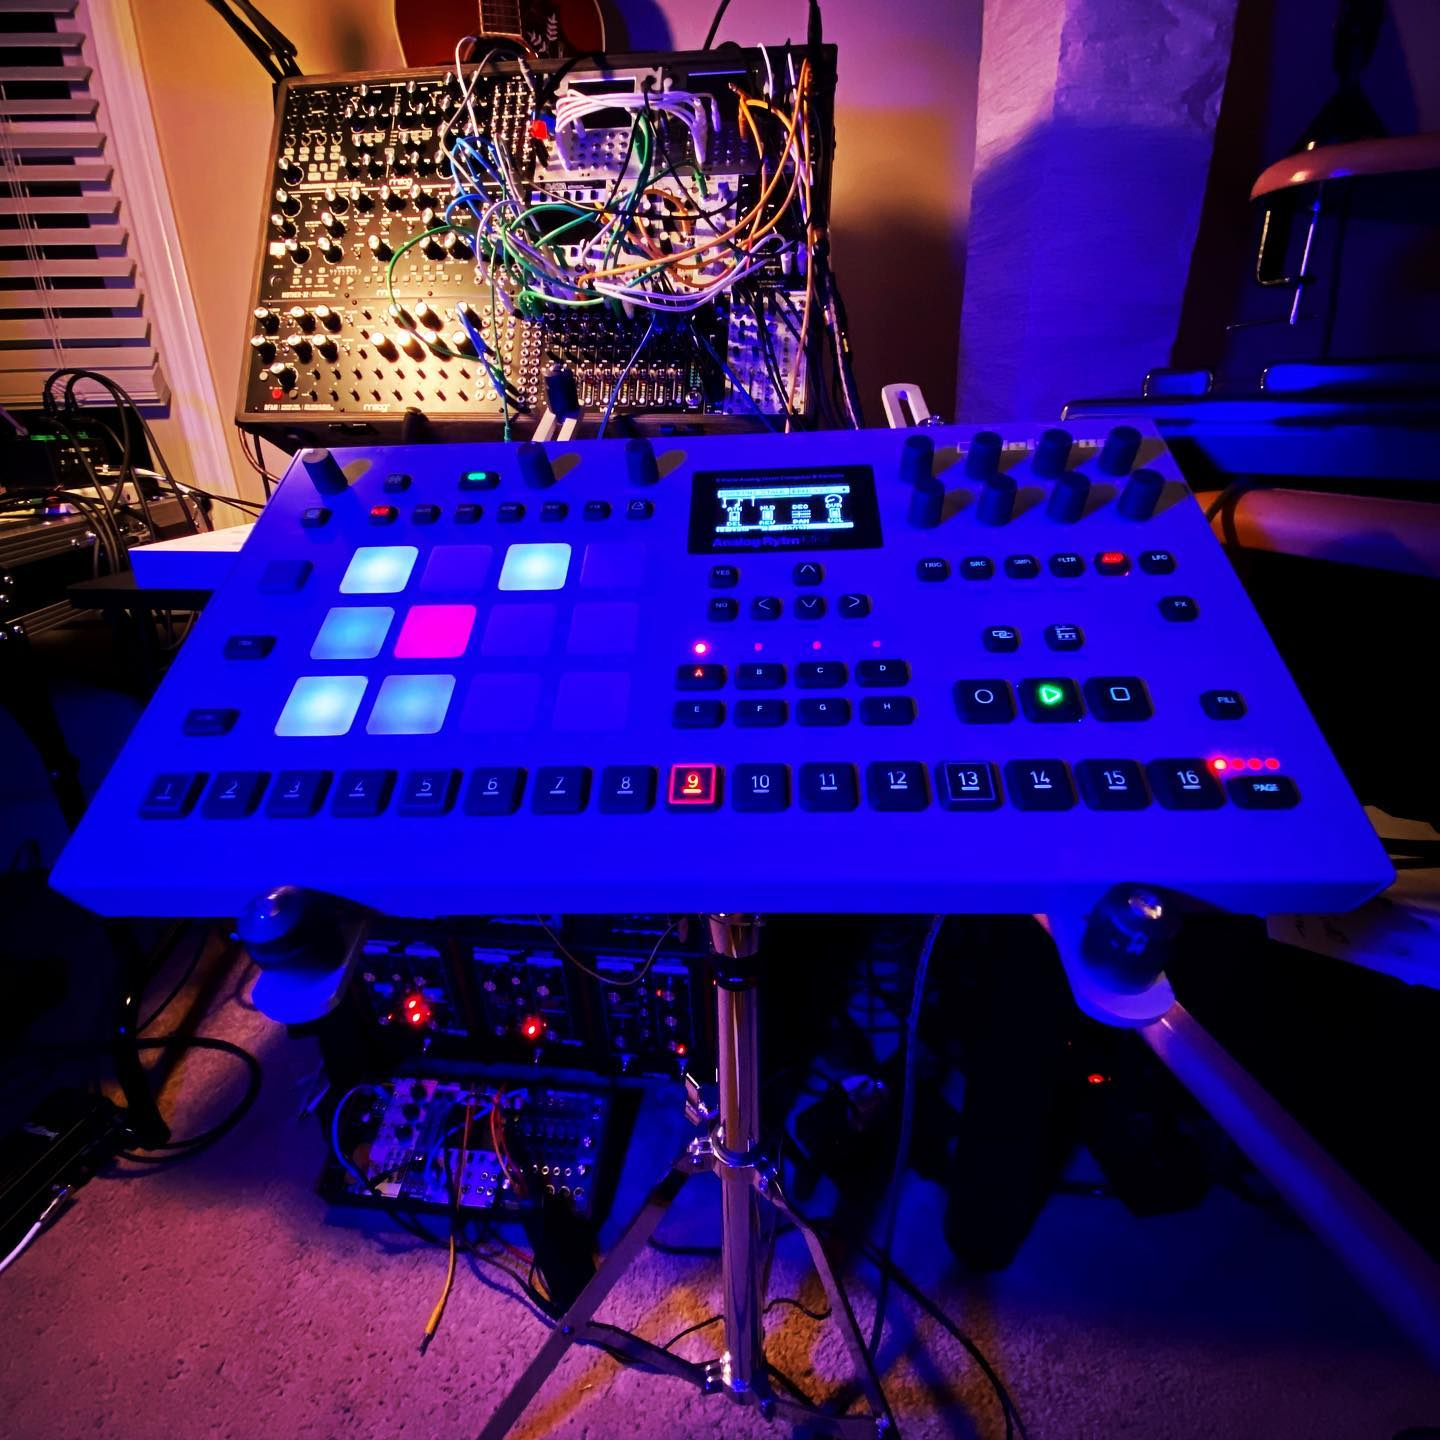 Just got my Elektron Analog Rytm back from repairs on the day they announced a new version at a new higher price. Yikes! Glad I got mine when I did, even though I love the new color. It's an amazing sounding drum machine but it's not my favorite workflow. It'll never be my main machine but I'll never get rid of it. Happy to have it back!